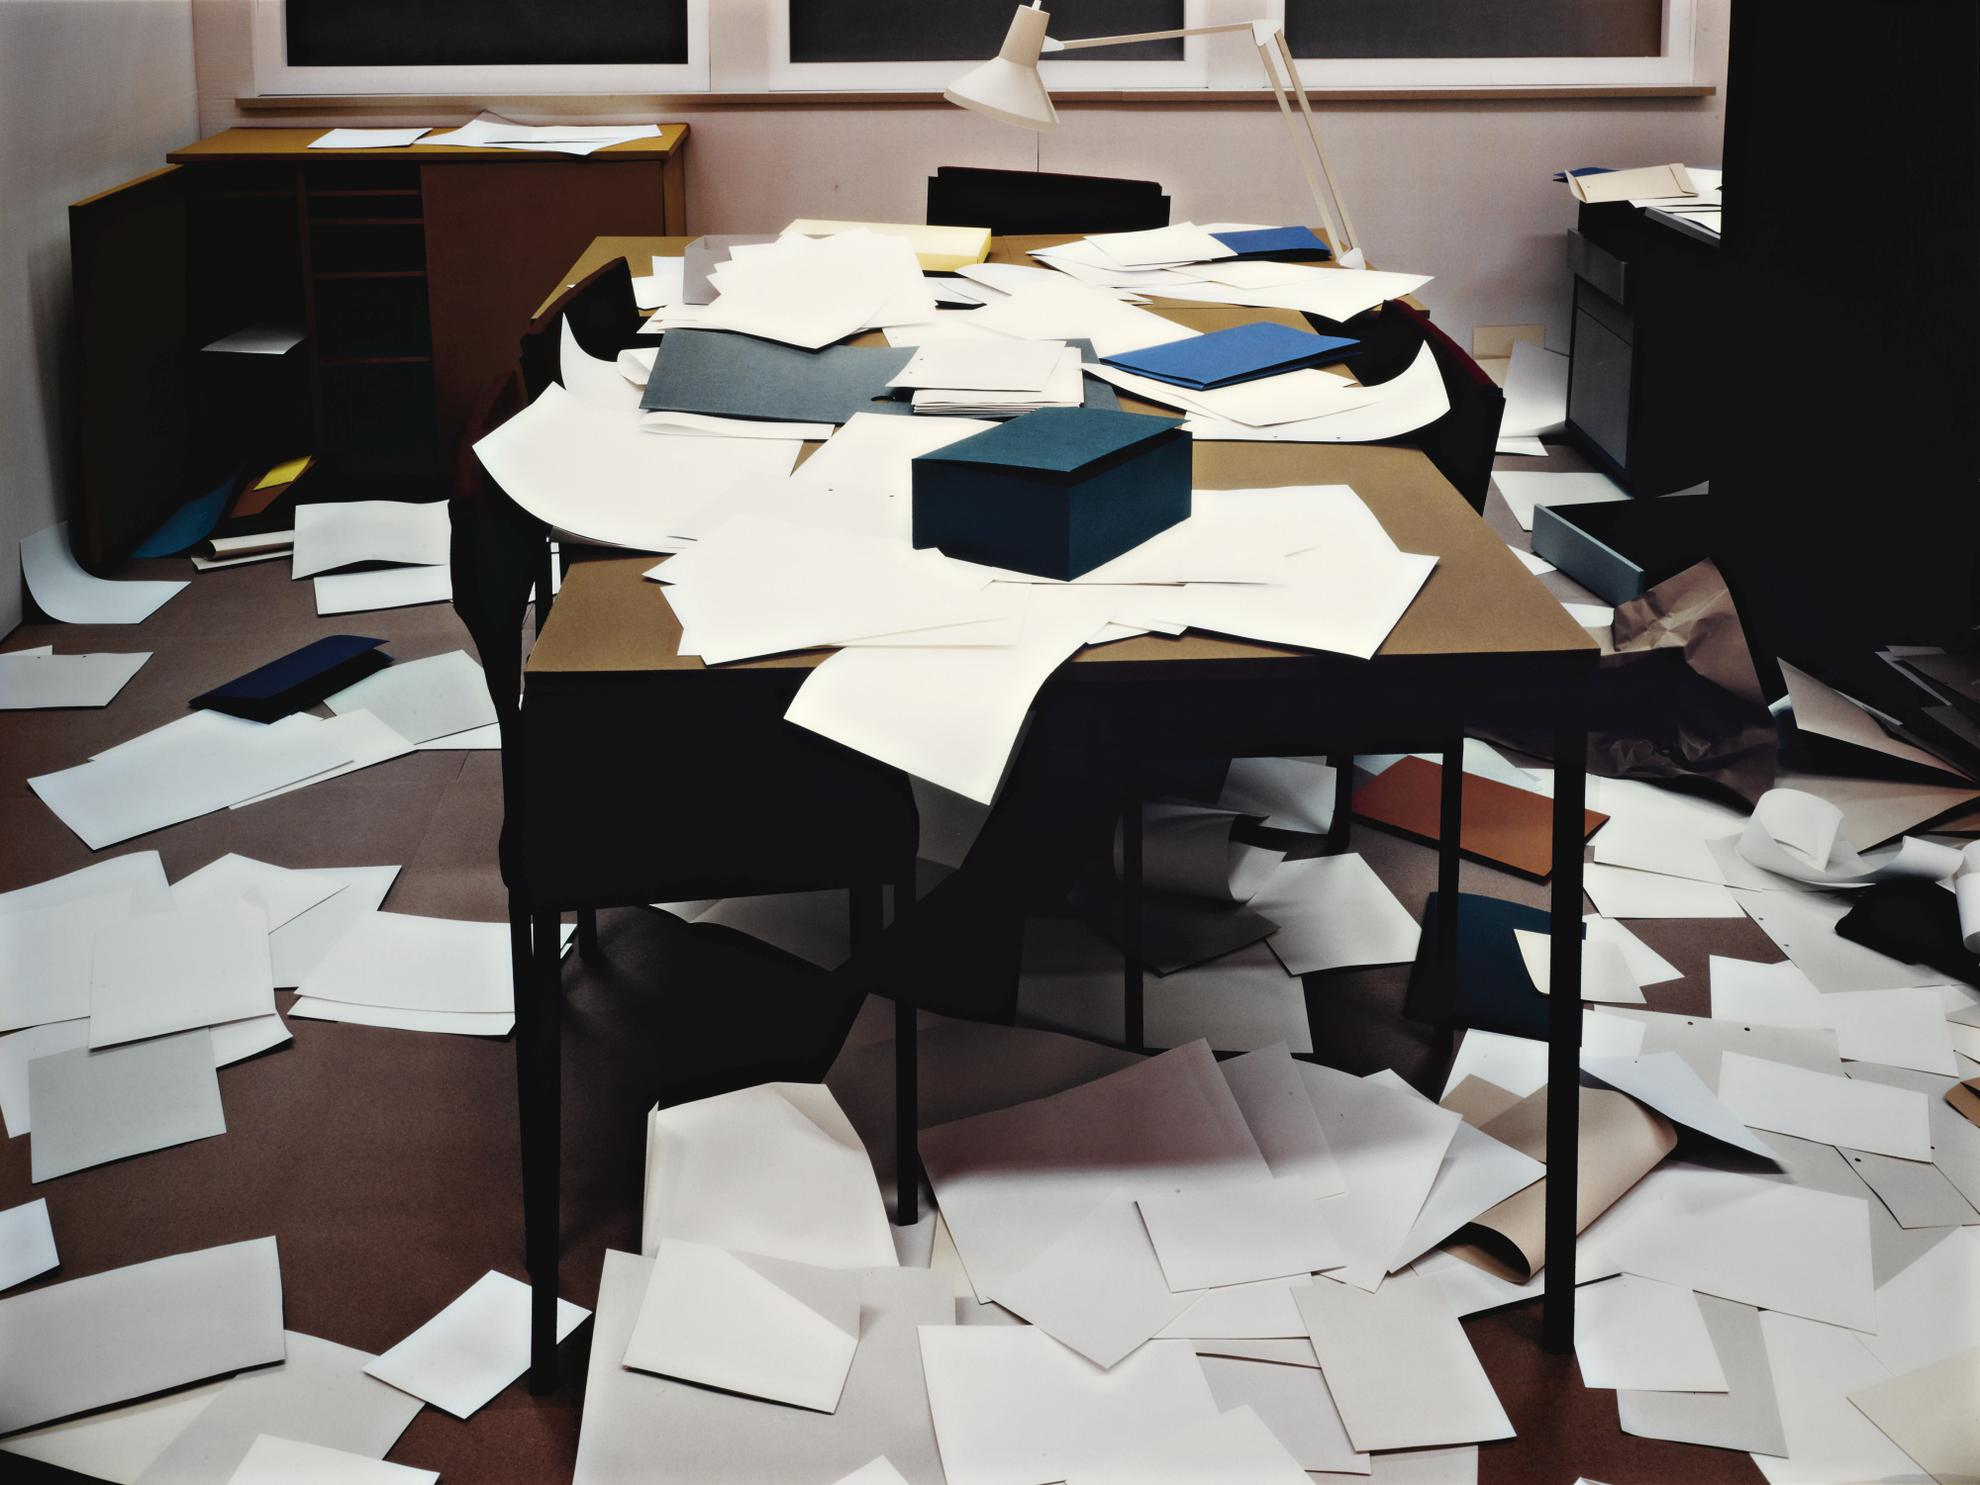 Thomas Demand-Buro (Office)-1995